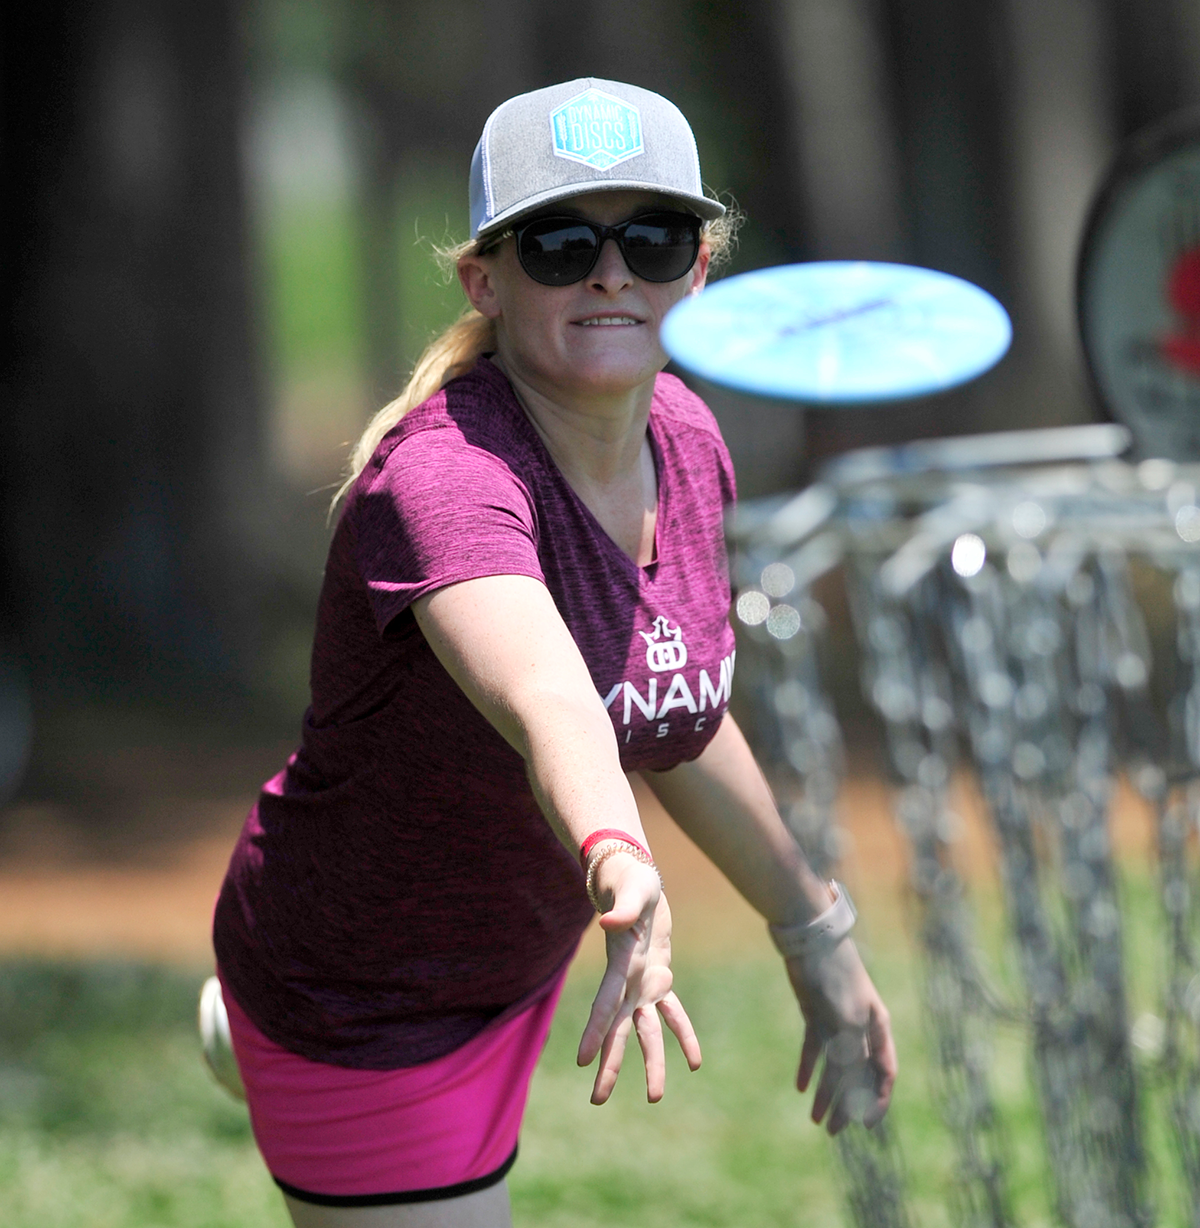 Woman Playing Disc Golf